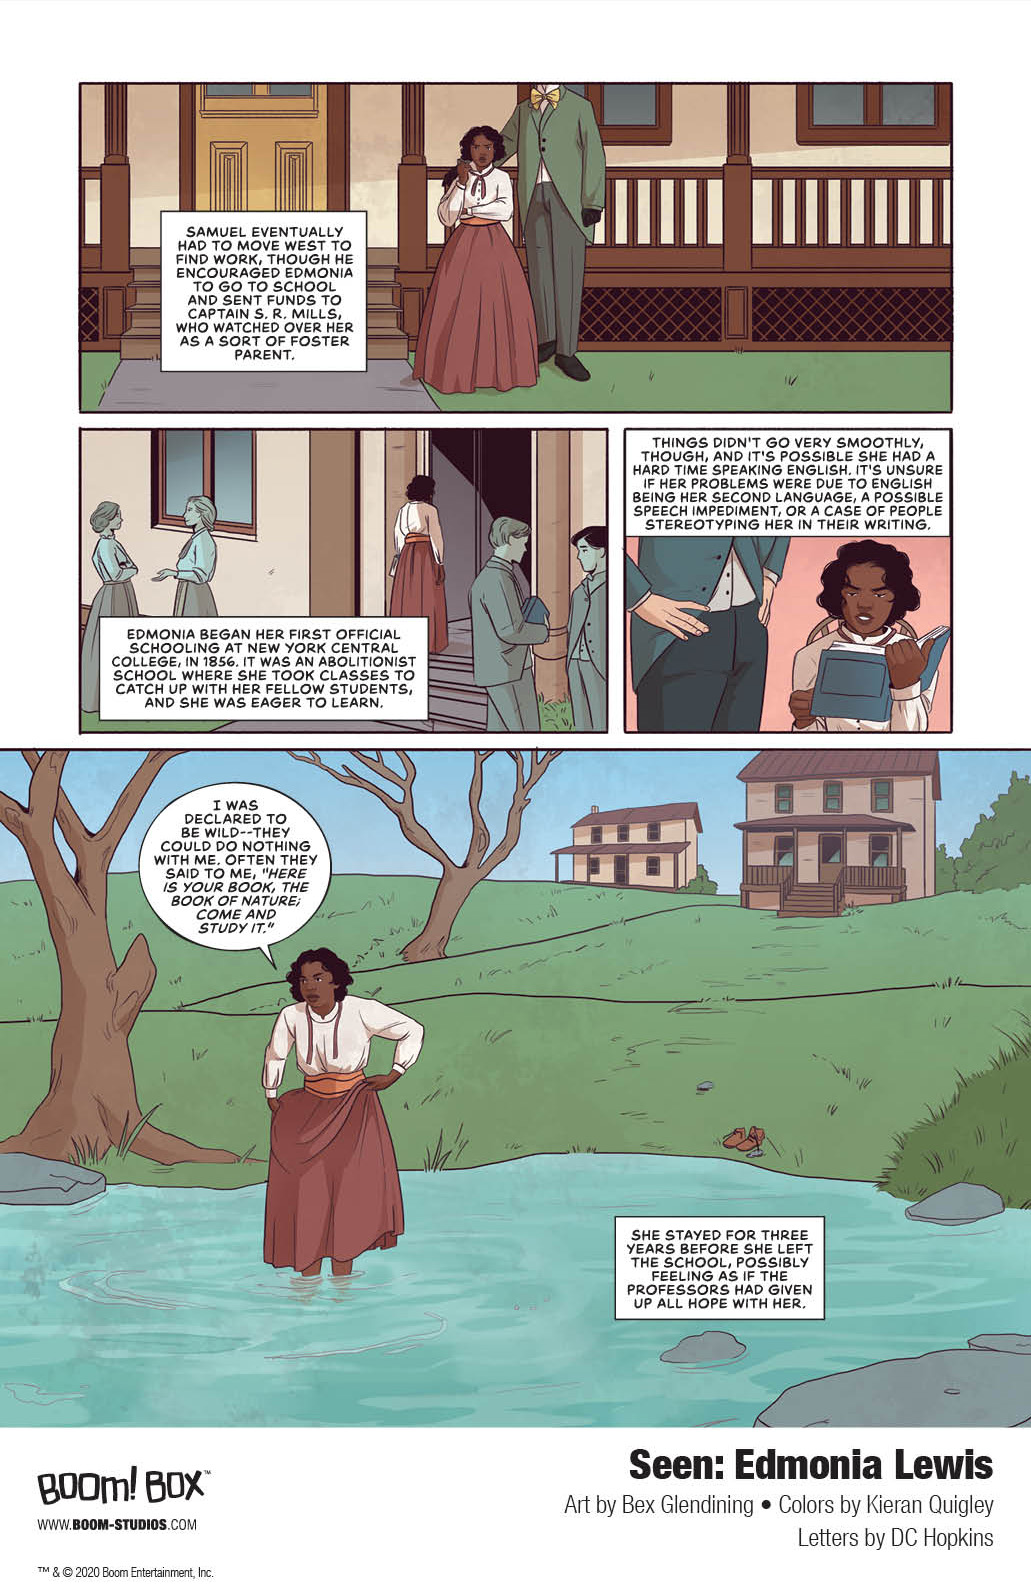 Seen_EdmoniaLewis_Interiors_005_PROMO Discover the spectacular story of sculptor Edmonia Lewis in BOOM! Studios' SEEN